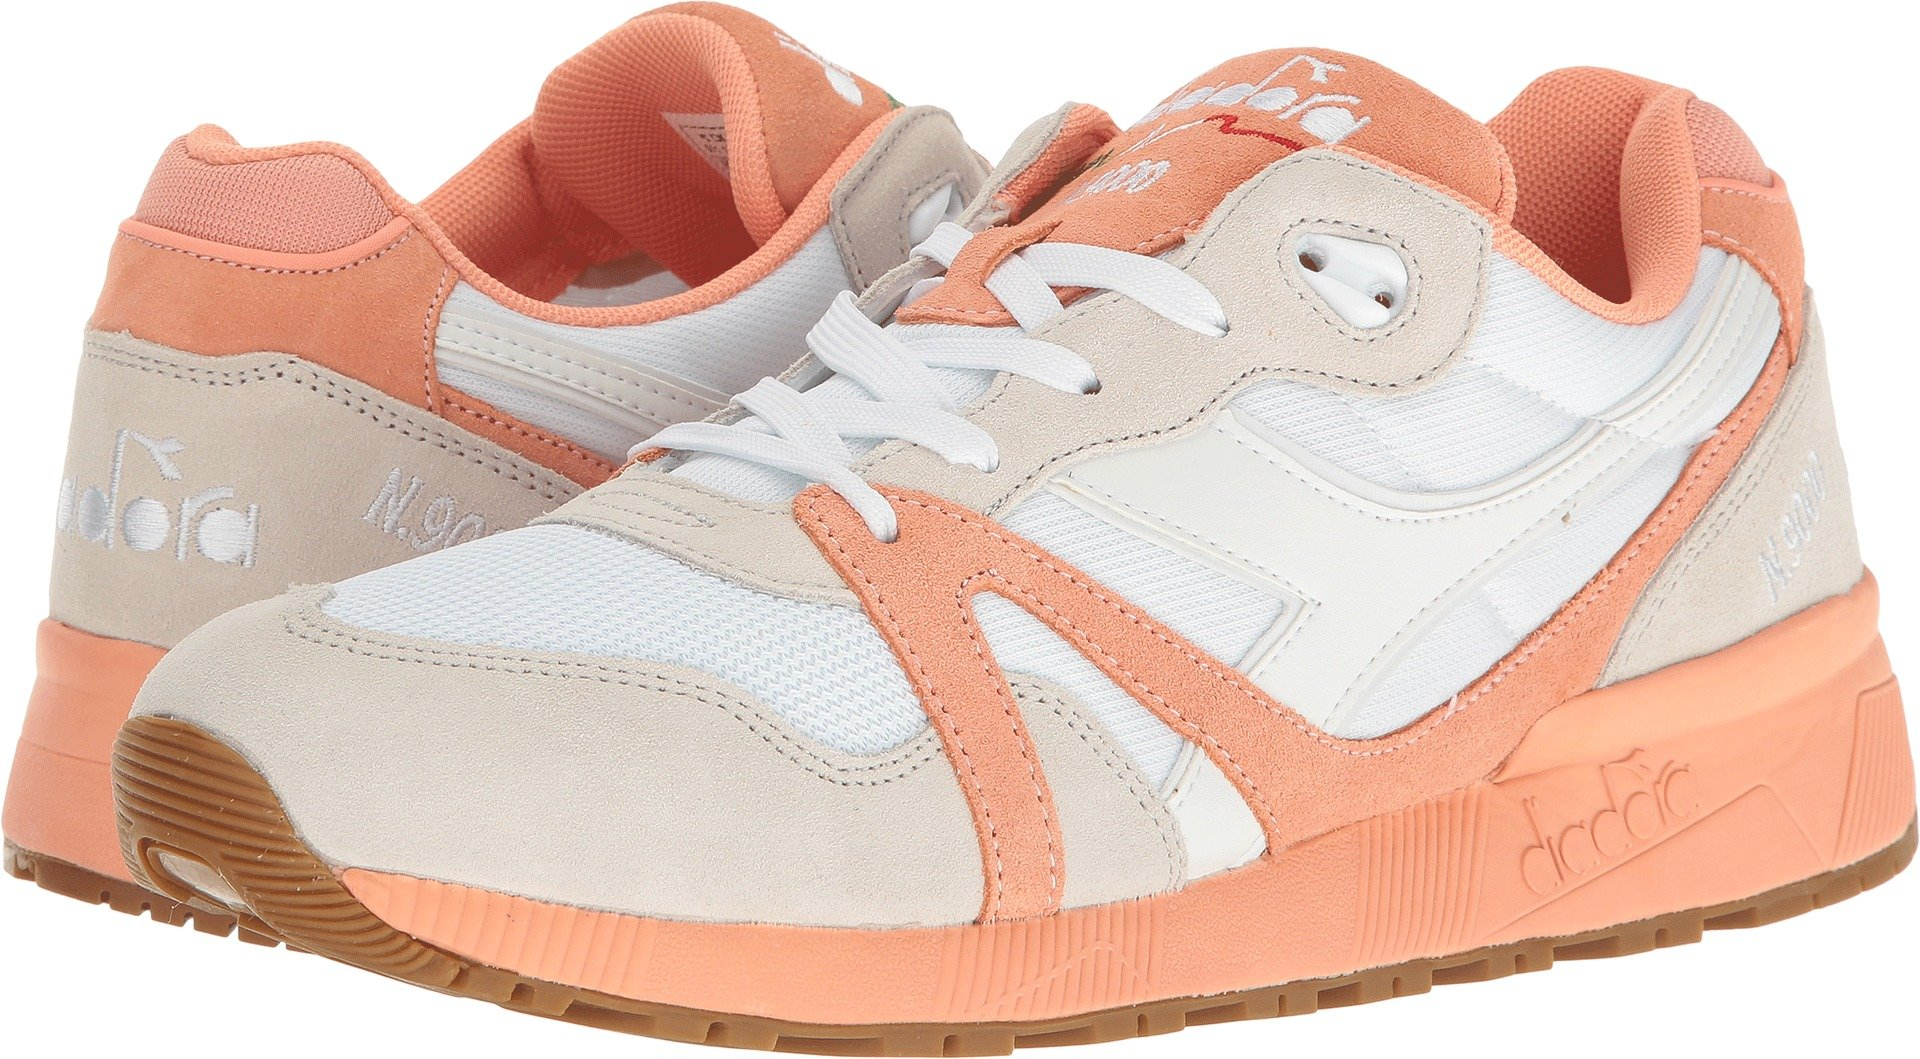 Diadora Unisex N9000 III White/Peach Pink 11.5 Women / 10 Men M US